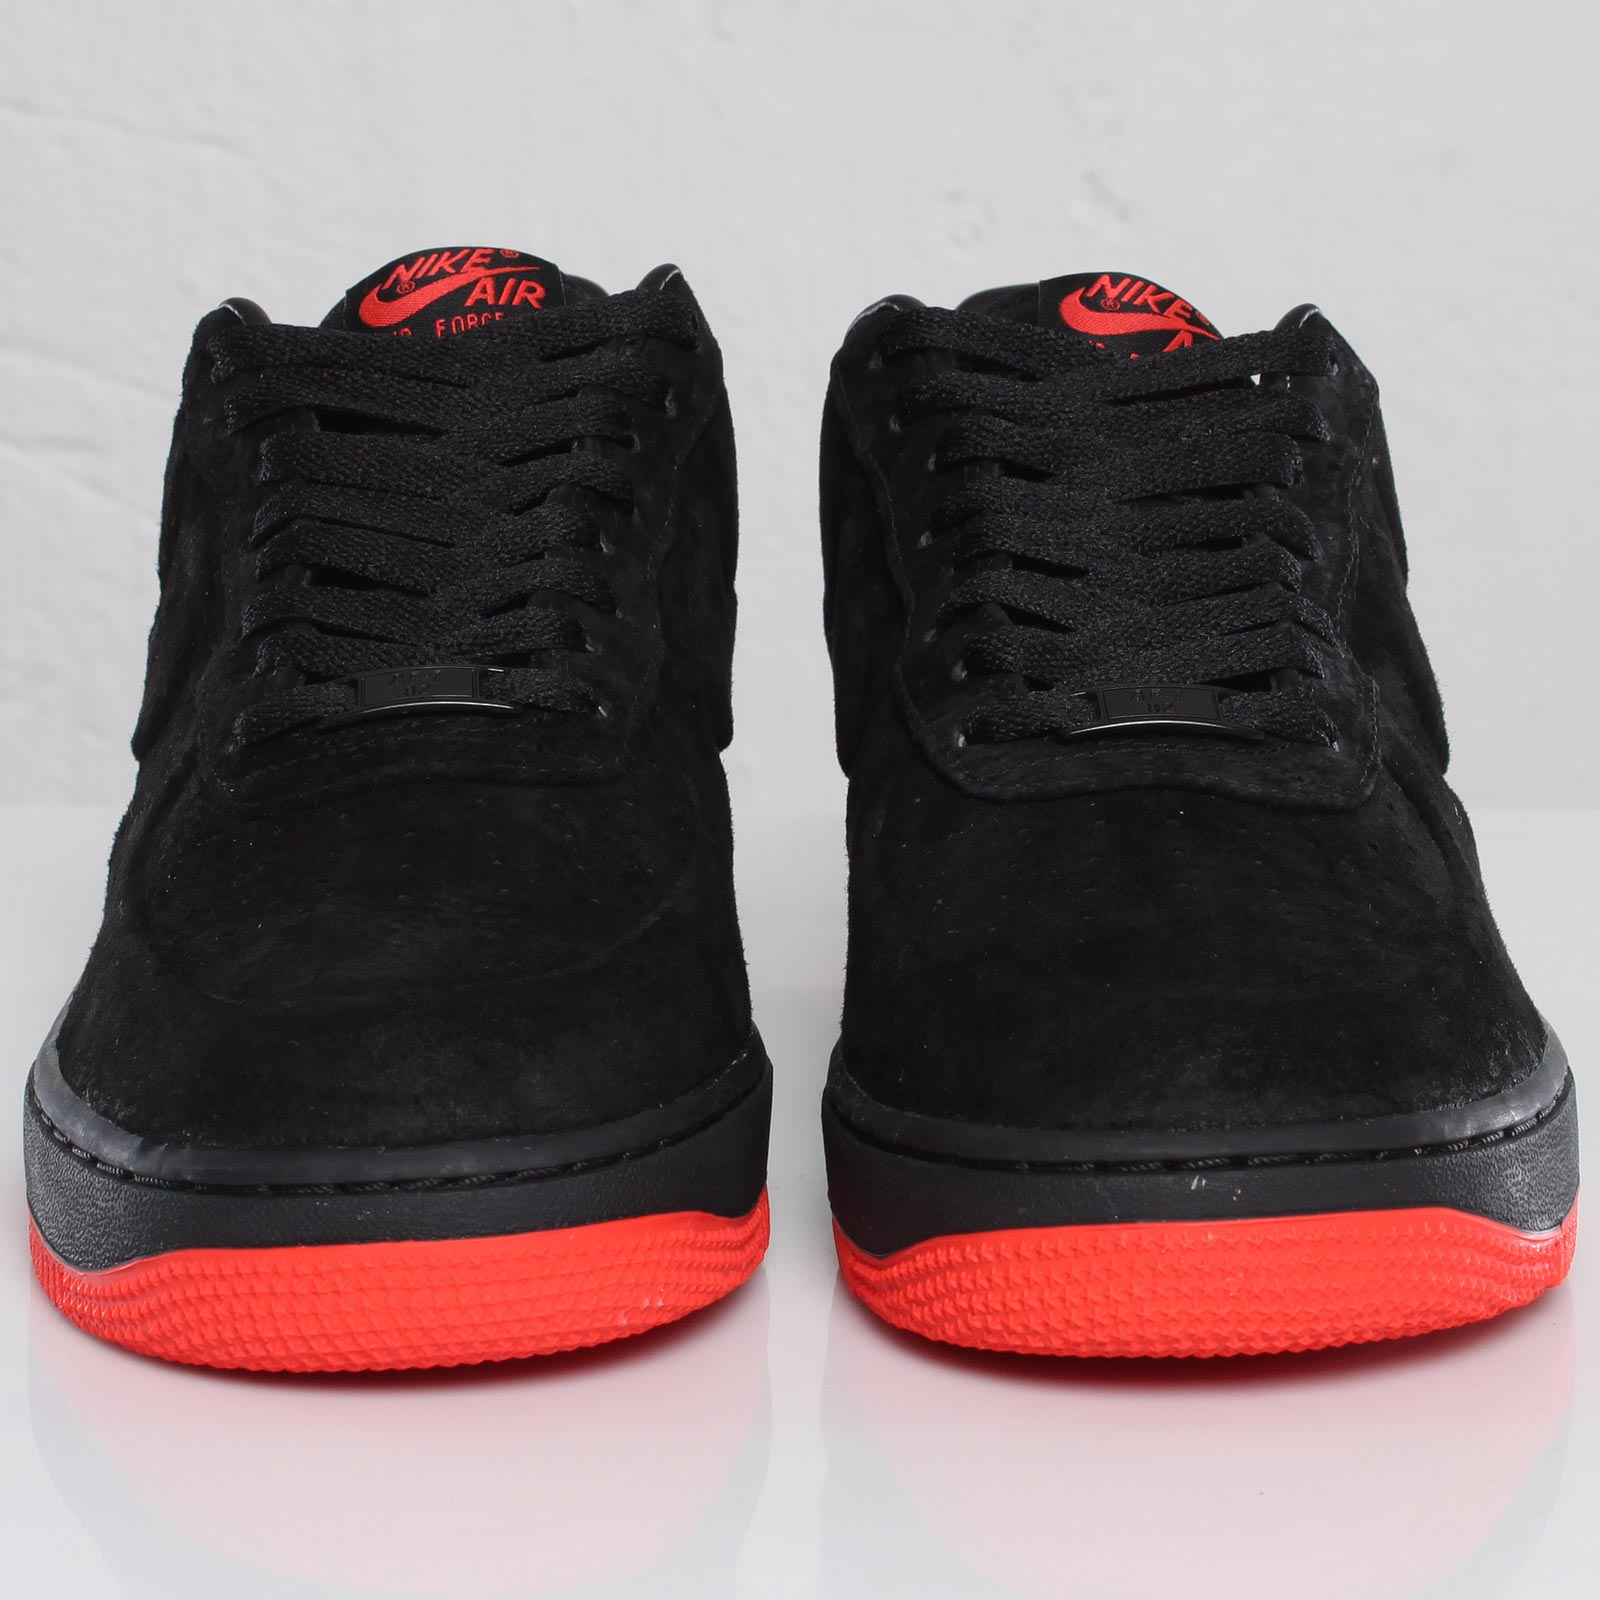 15dd49850393 Nike Air Force 1 Low VT - Black Max Orange